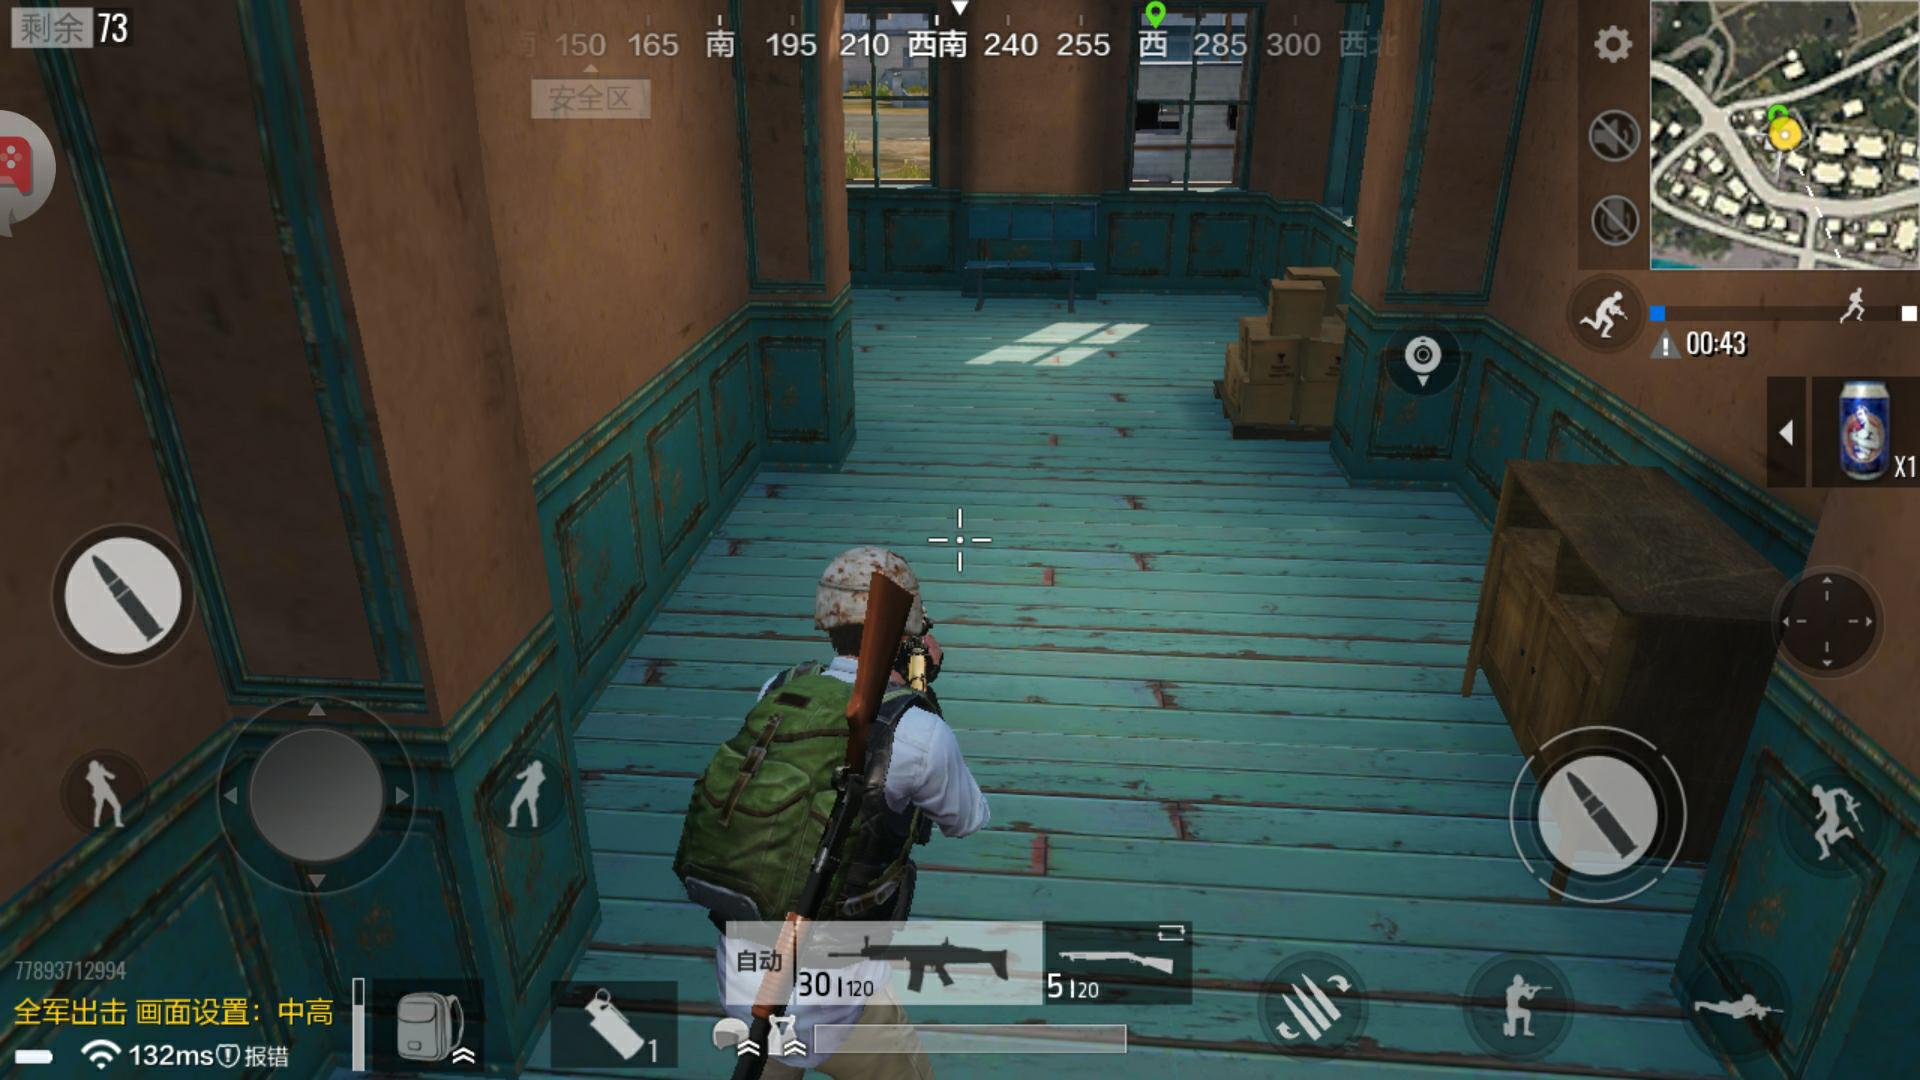 Pubg Mobile Lite Announced For Android Available On Play: How To Download & Play PUBG Mobile On Android • Jam Online